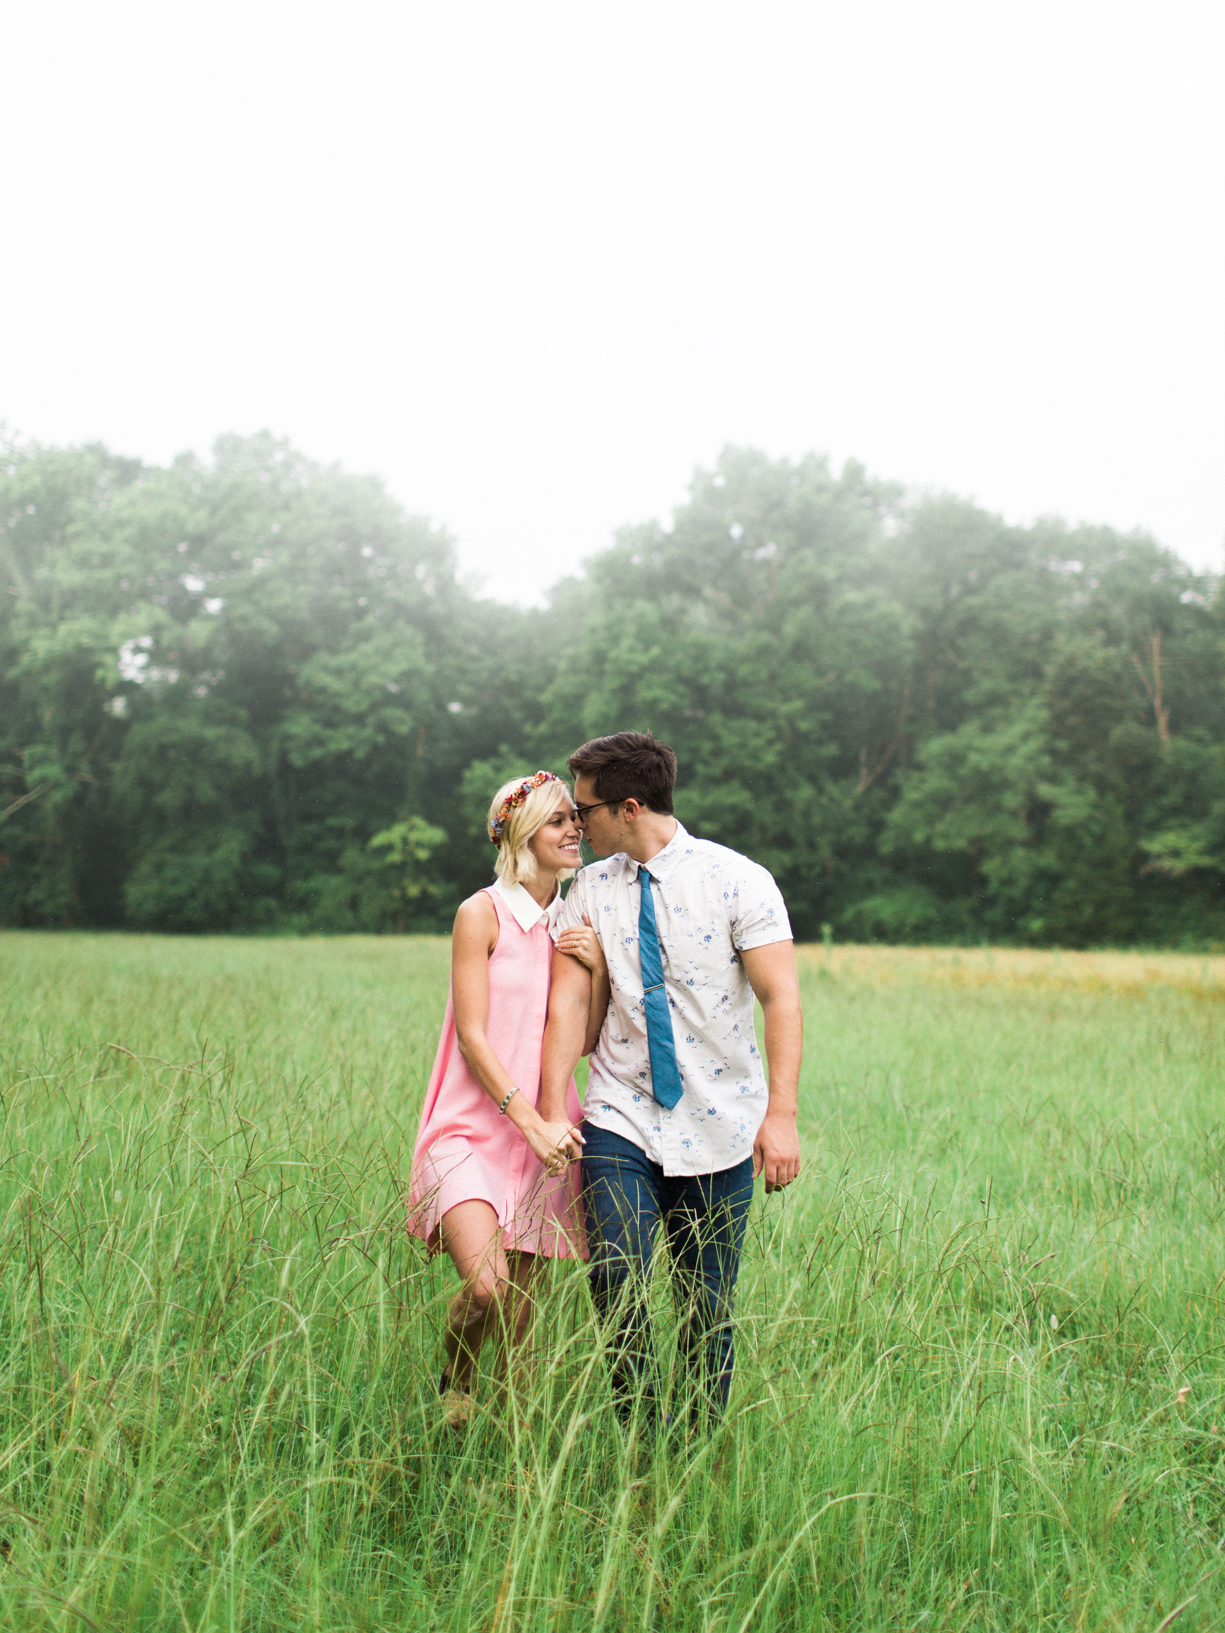 Joel & Courtney Engagements-021.jpg